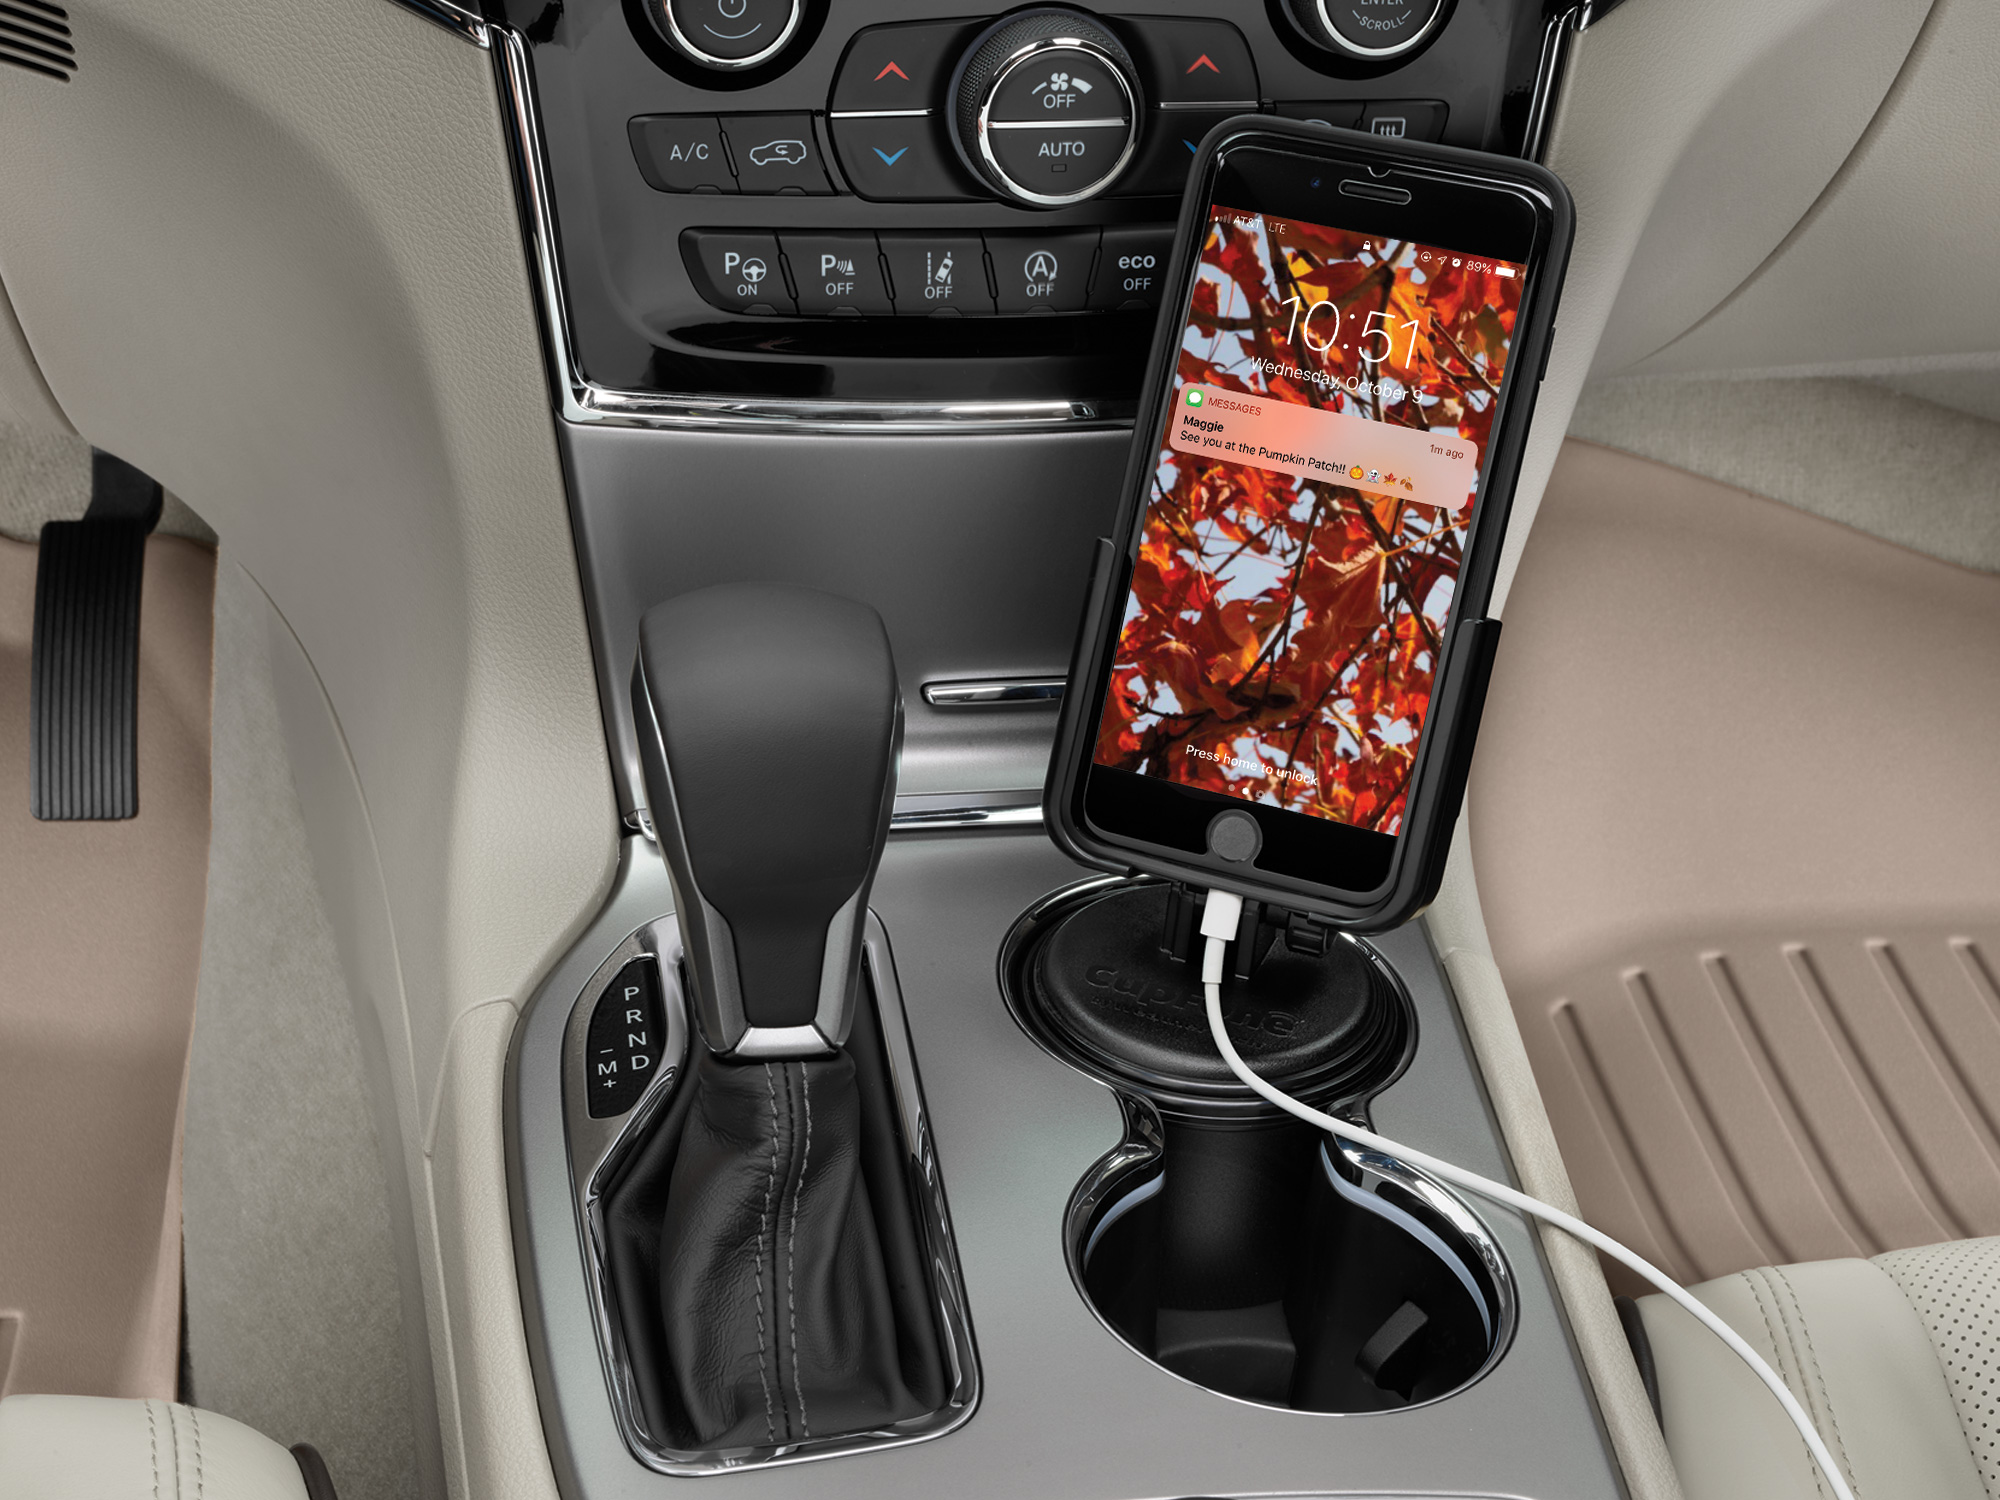 WeatherTech CupFone in the cup holder of a vehicle with fall imagery on the phone's screen.